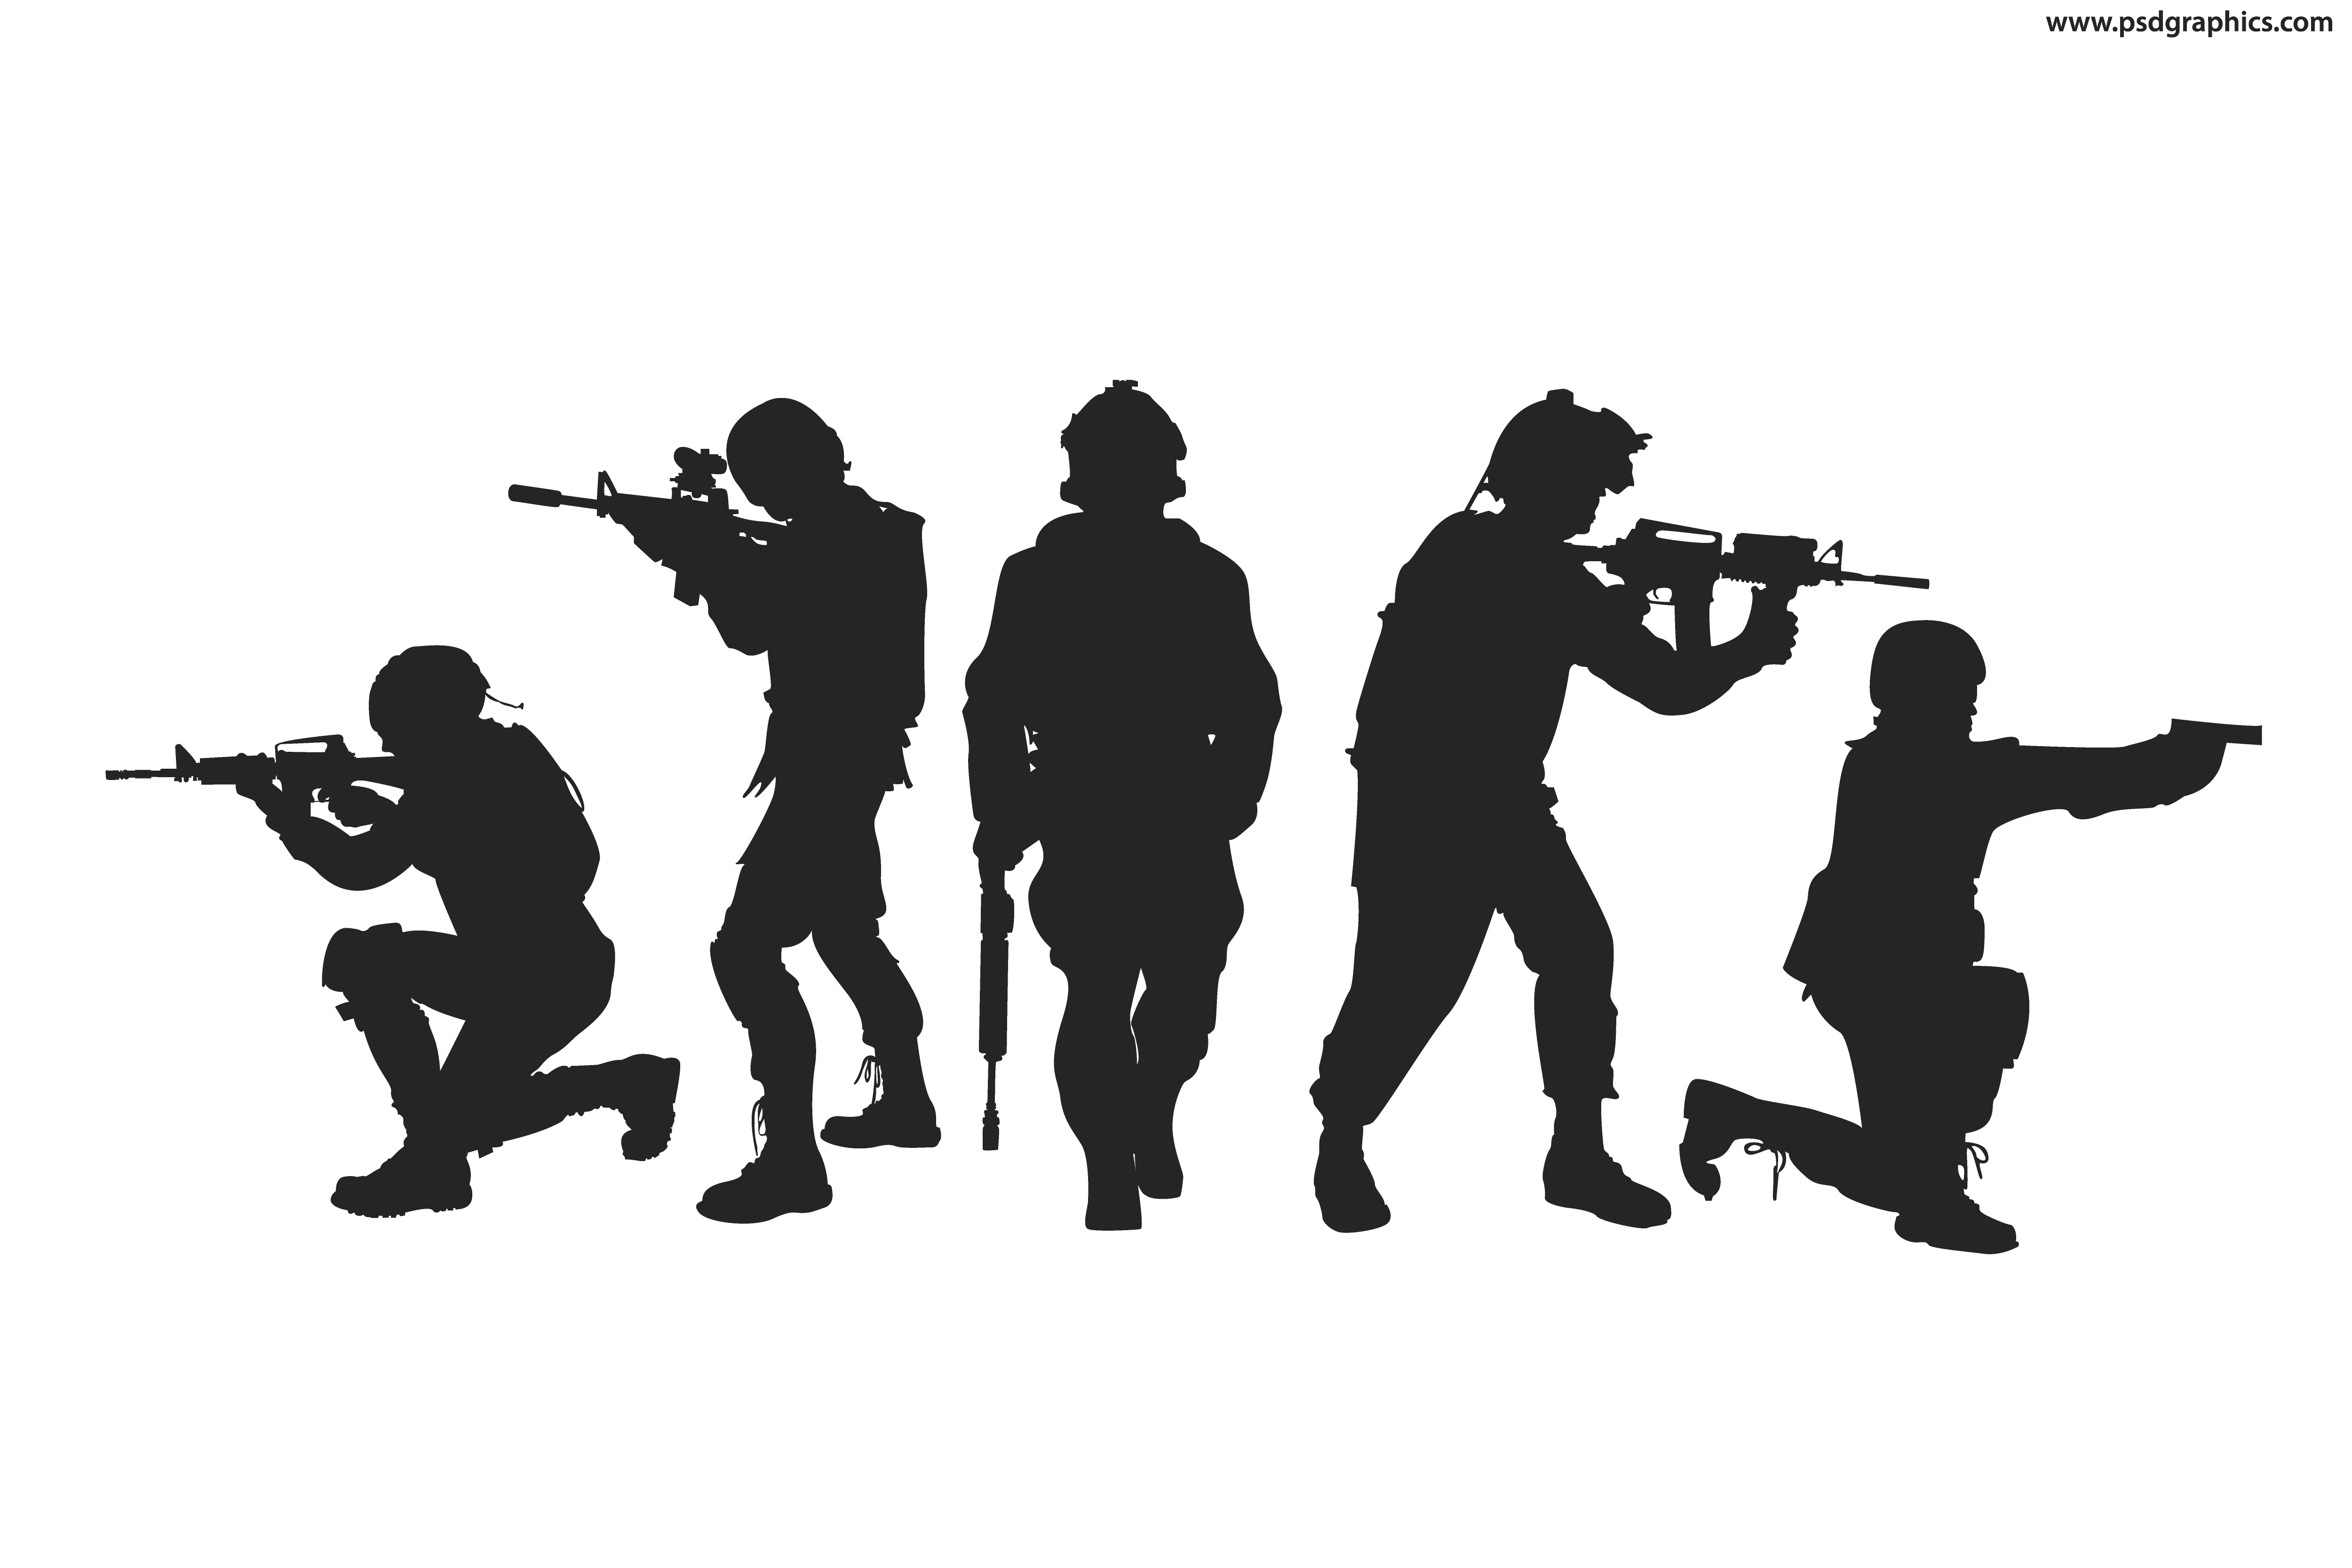 Silhouette Soldier Military Army Silhouettes Vector Png Free Library